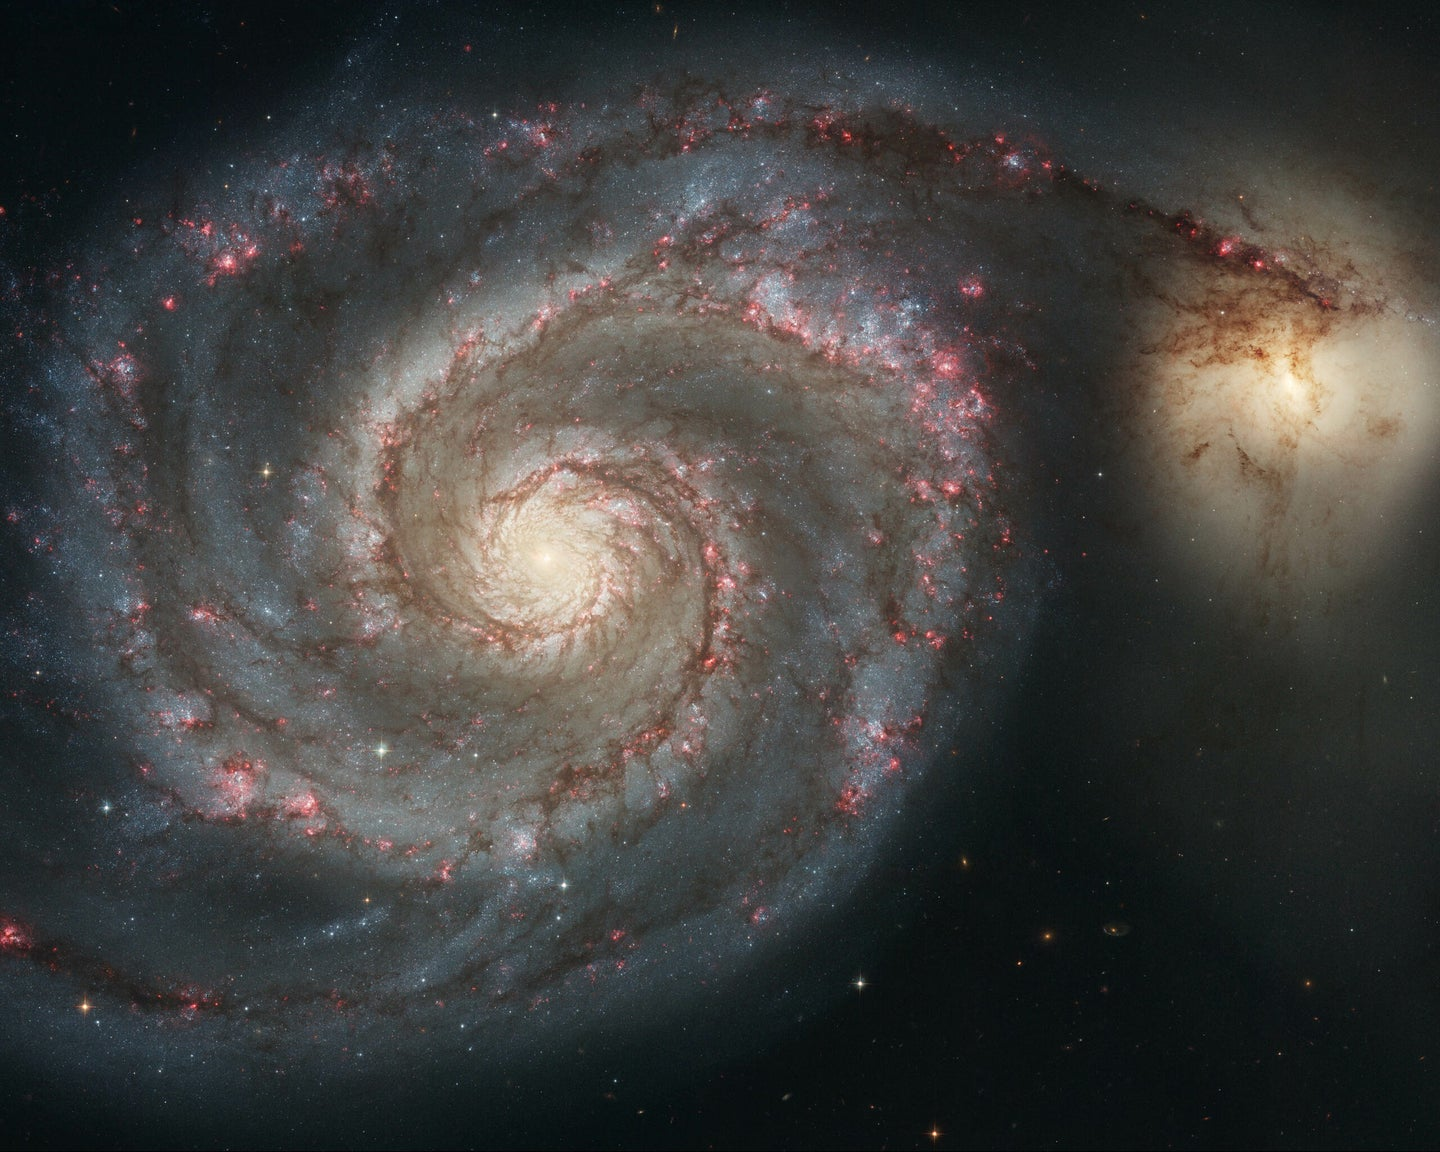 a large spiral galaxy next to a smaller ball of light in space